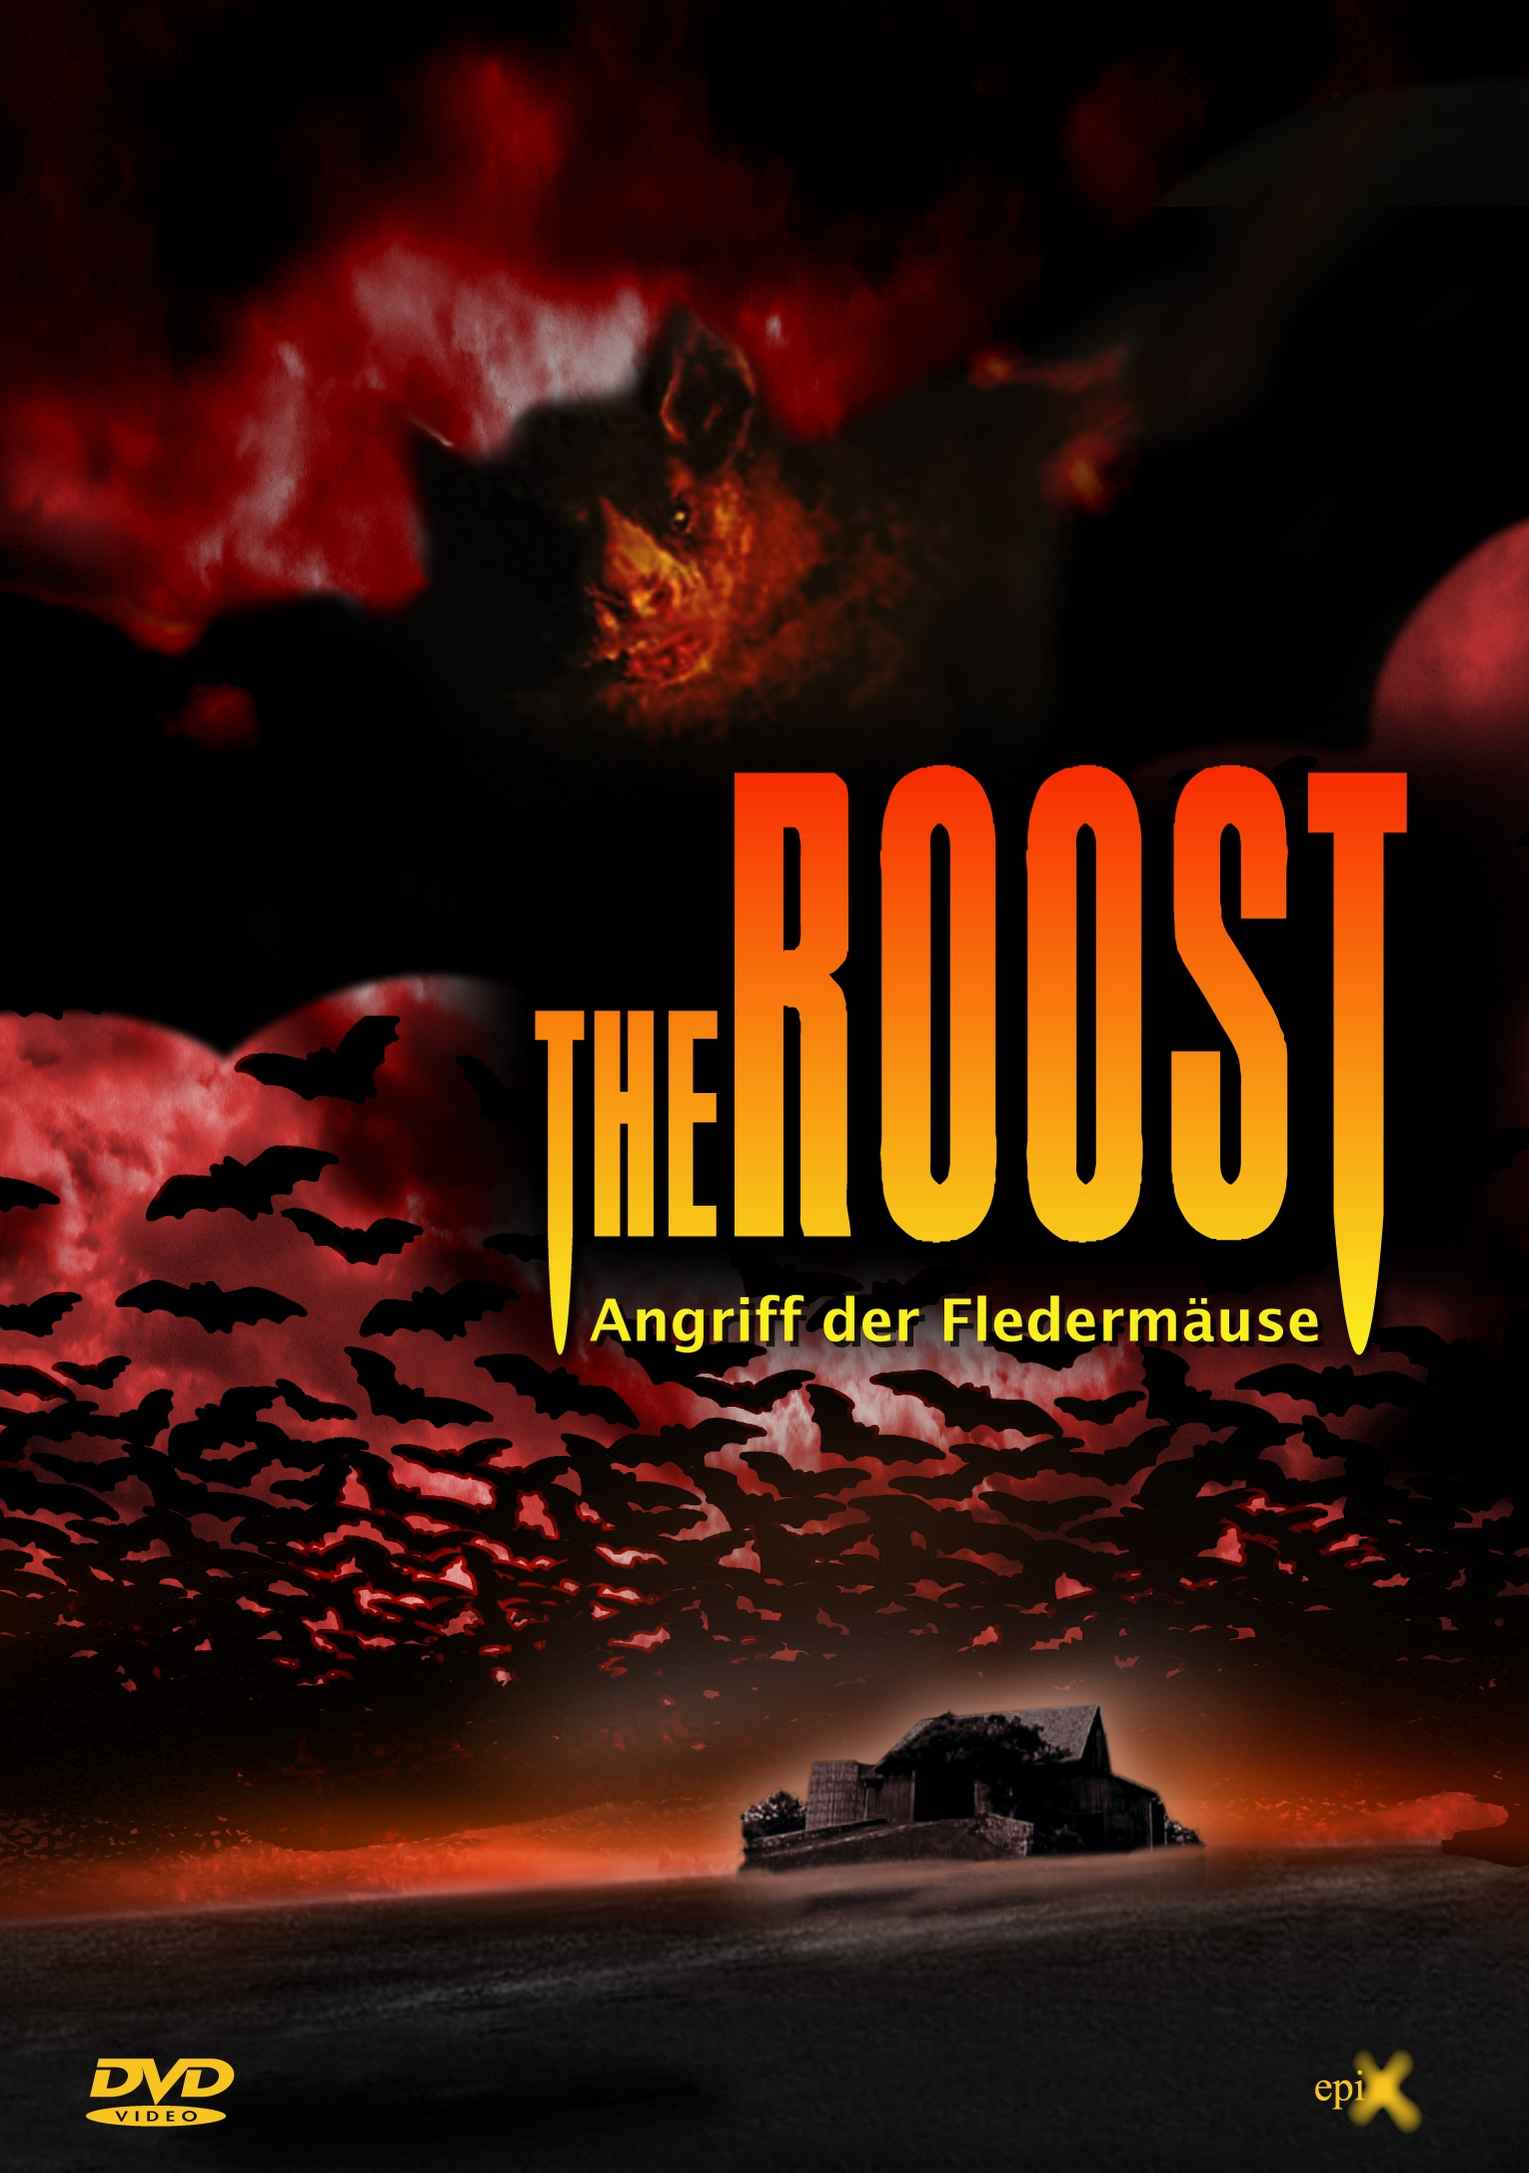 THE ROOST - Frontcover